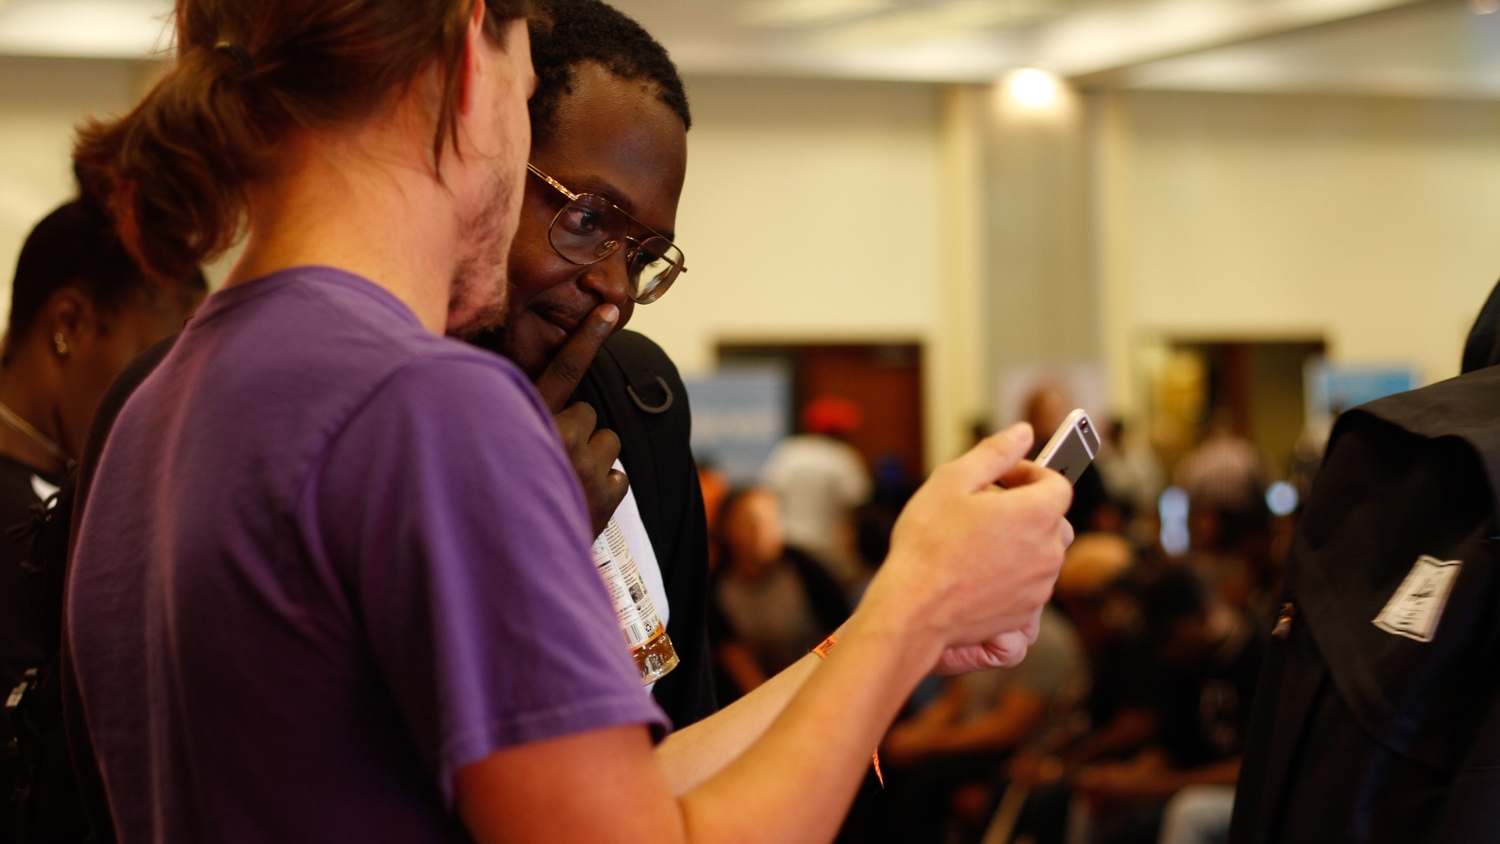 Tech entrepreneurship blends with music at A3C. (Photo by Christina Mallas for A3C)